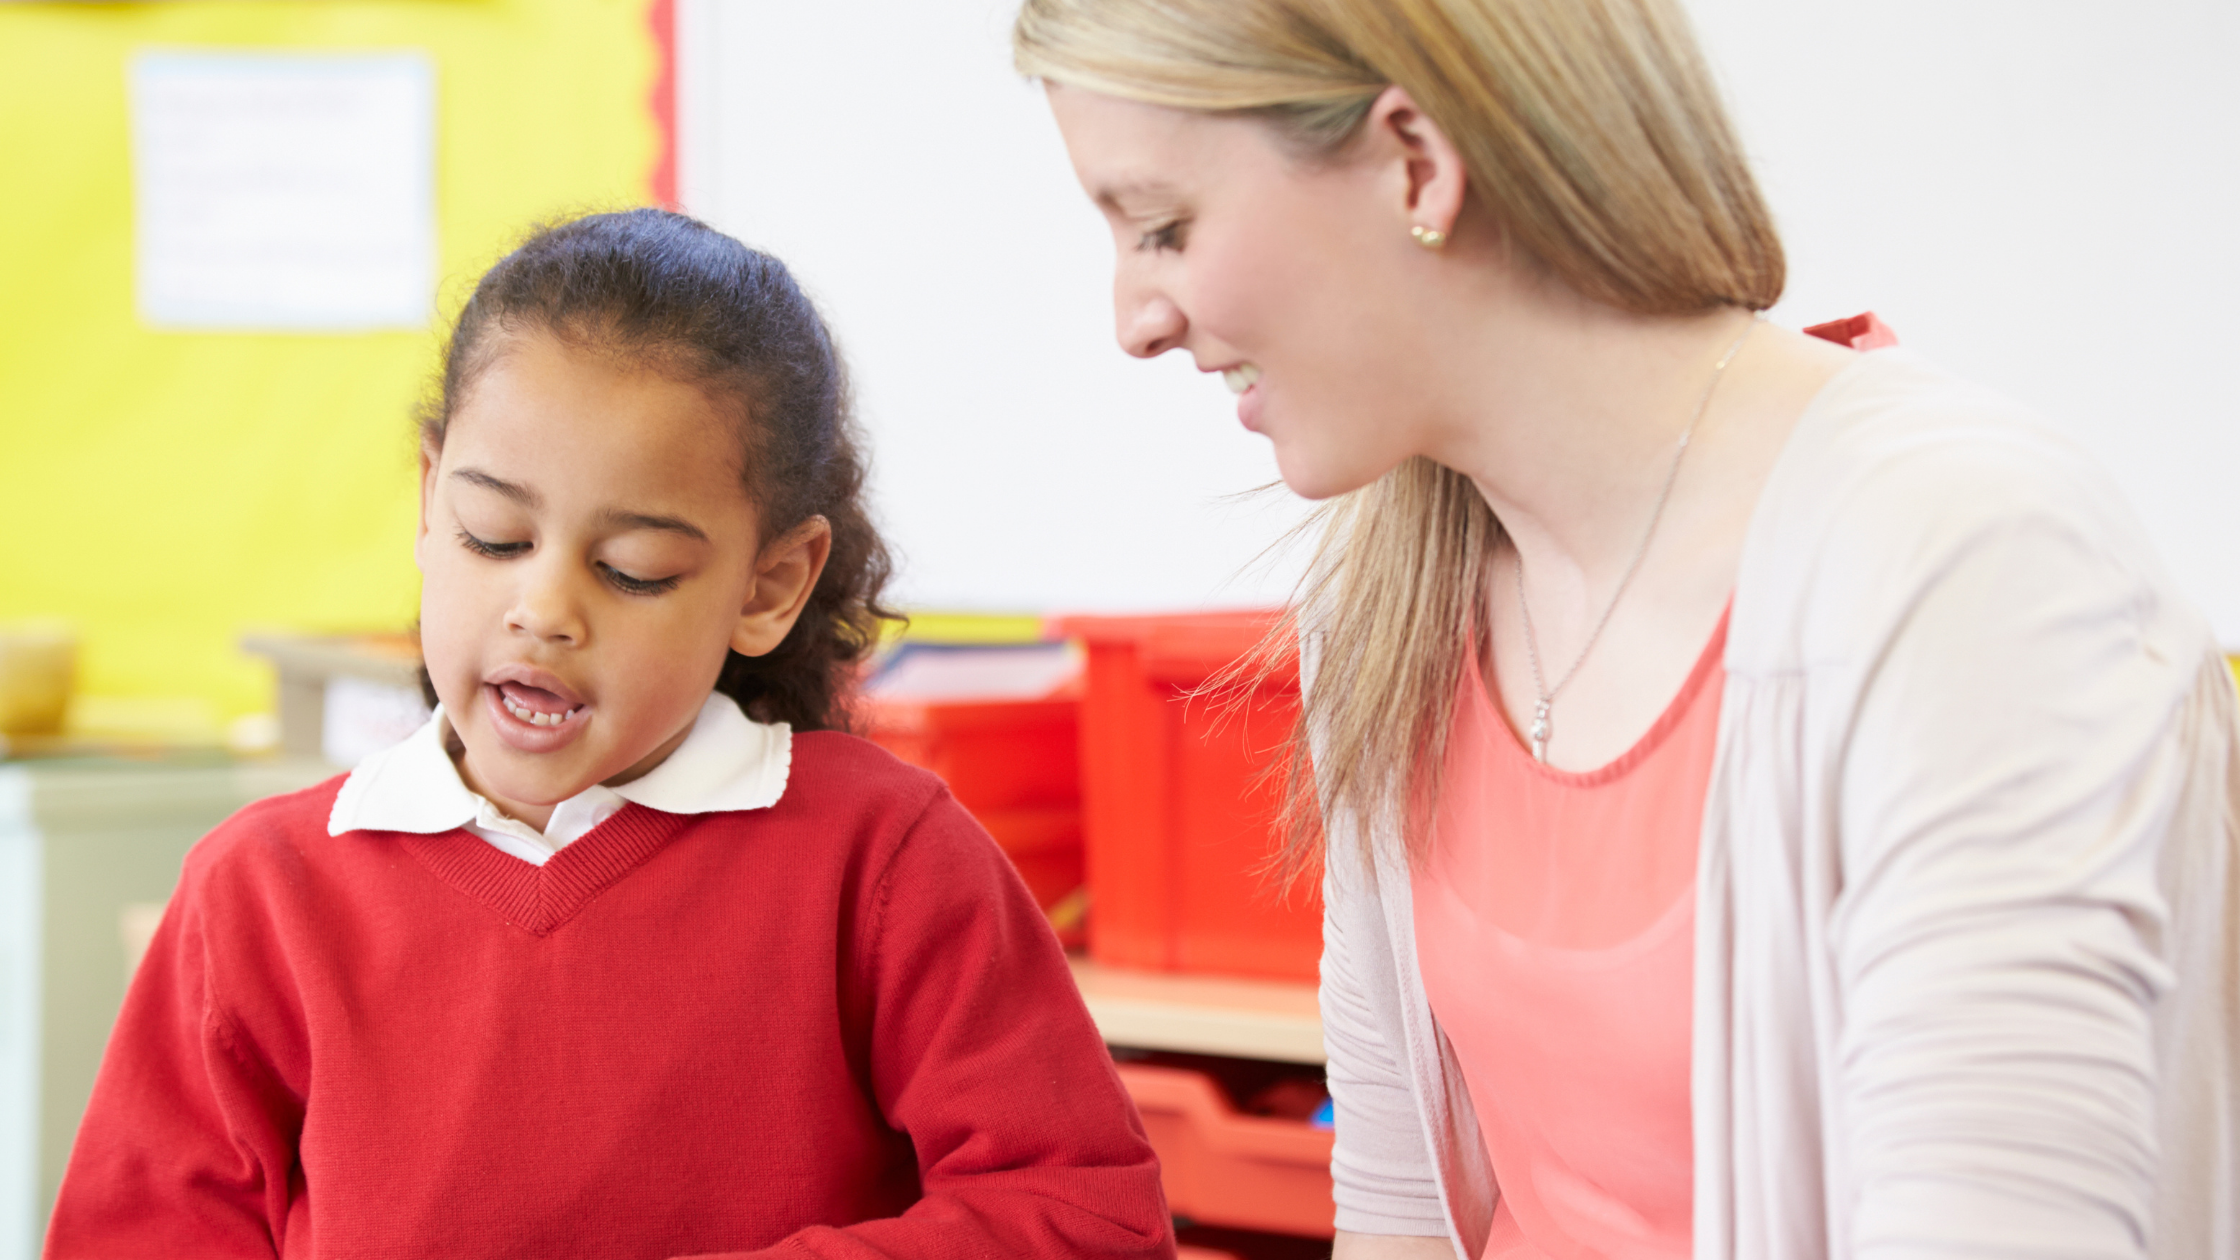 A teacher supports a learner